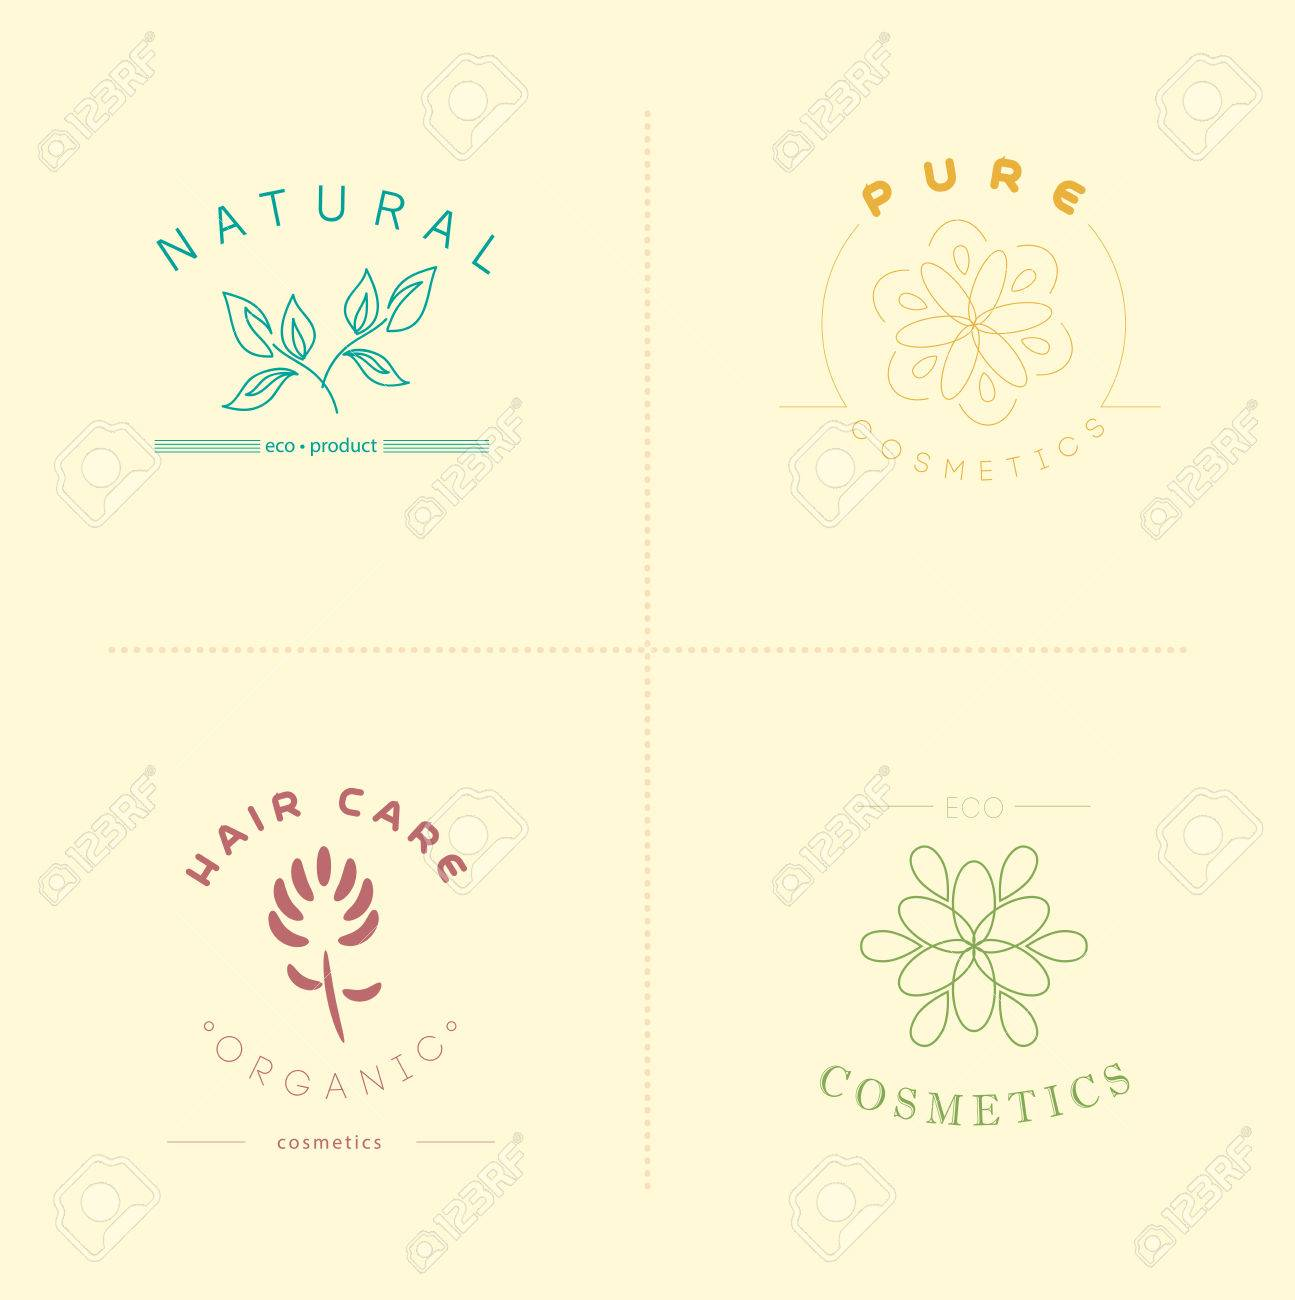 Vector Collection Of Cosmetics Logo Identity Templates. Natural And Eco Product  Label. Organic Cosmetics